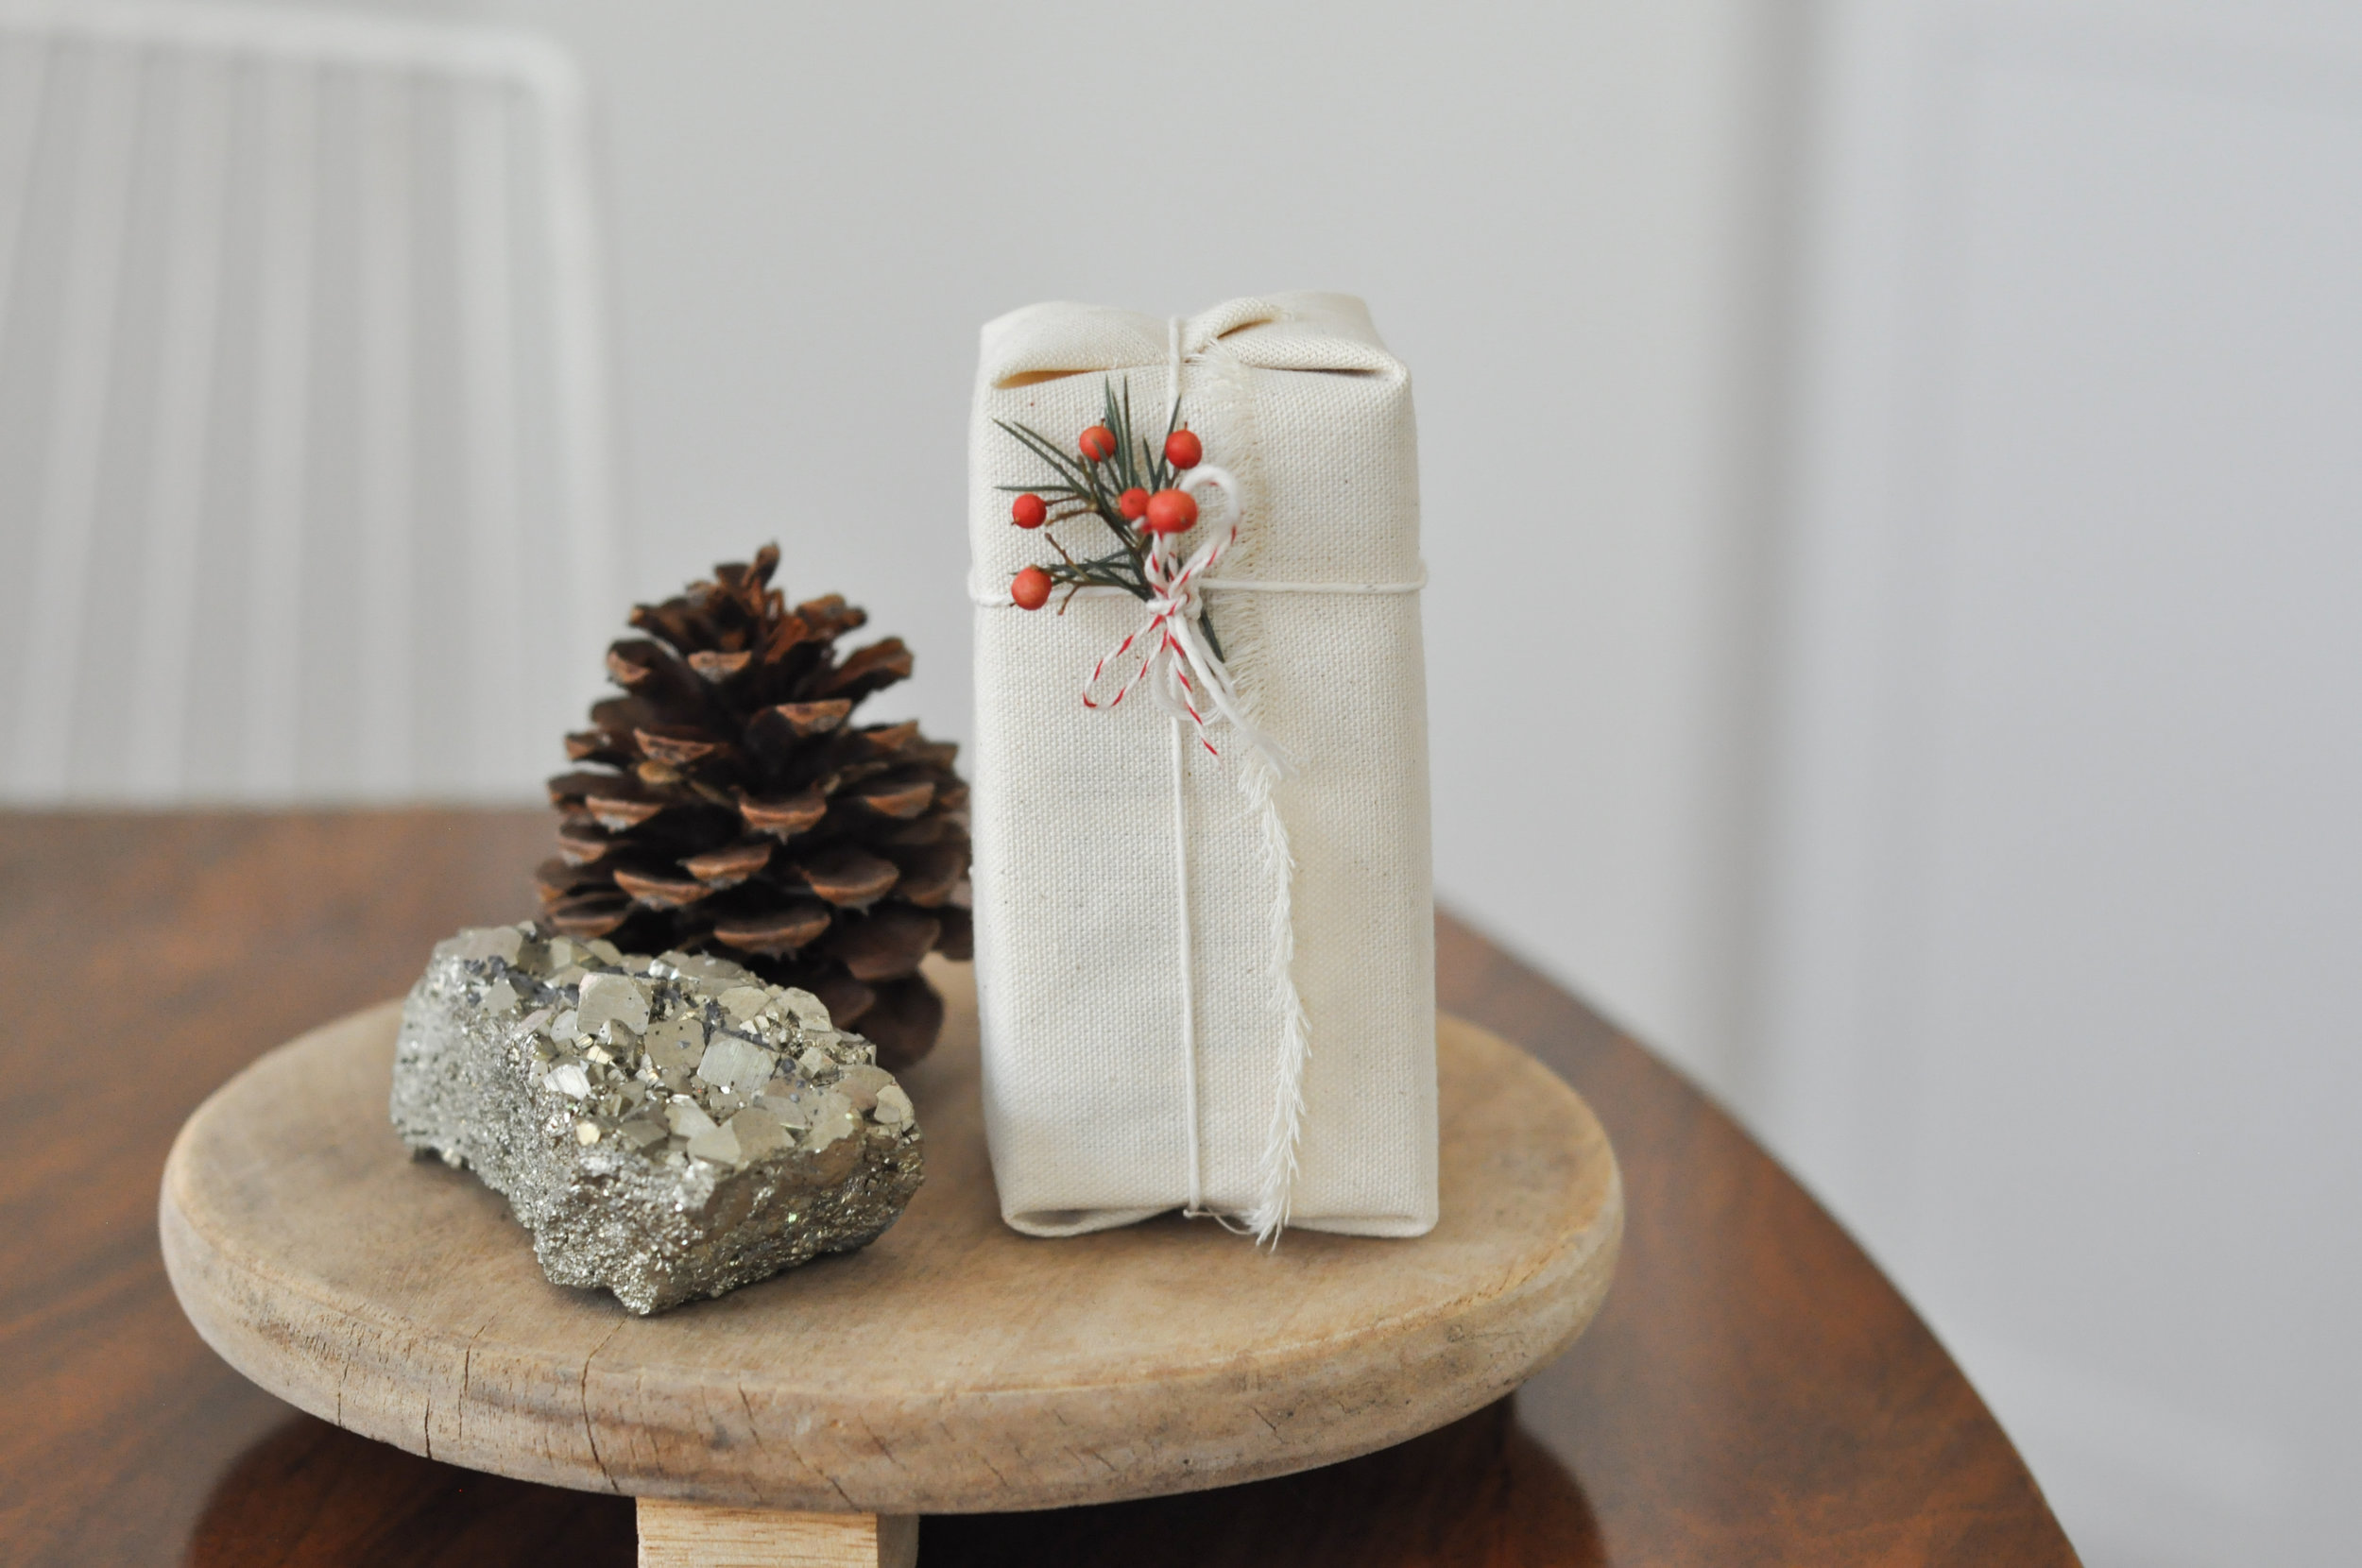 free-and-native-zero-waste-wrapping